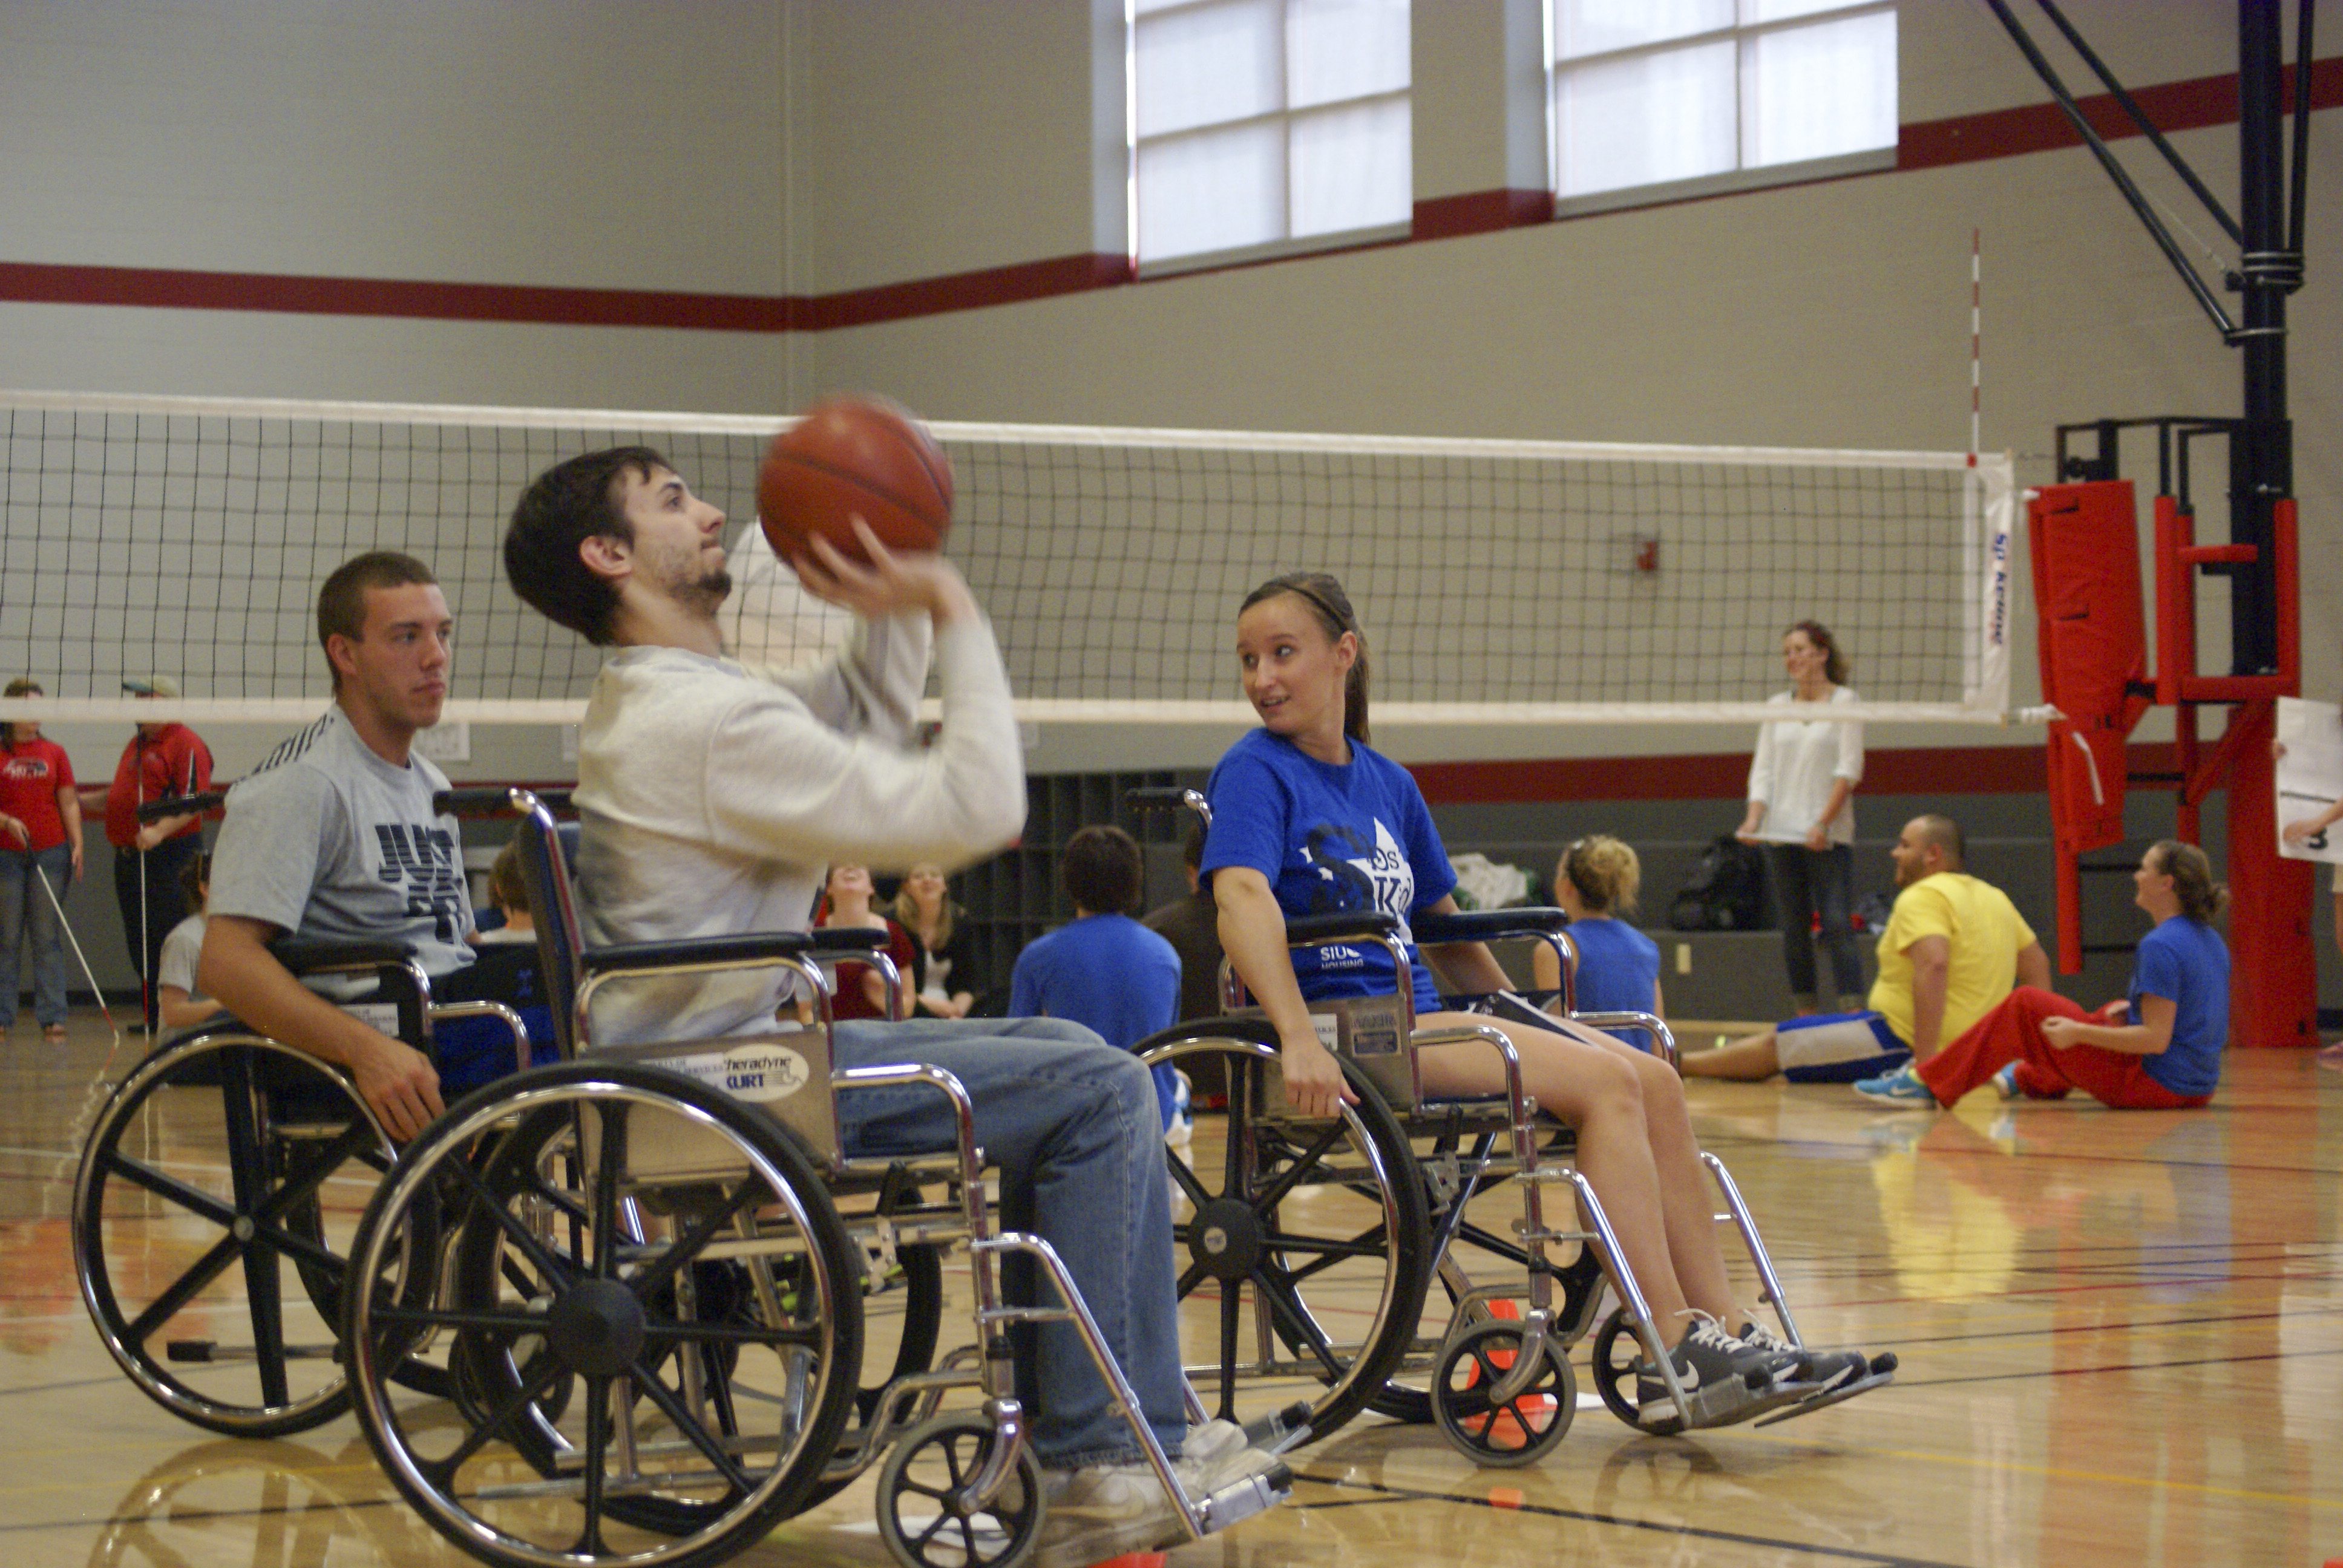 wheelchair volleyball school desk chair vintage cougar world games siue campus recreation great challenge basketball and sitting